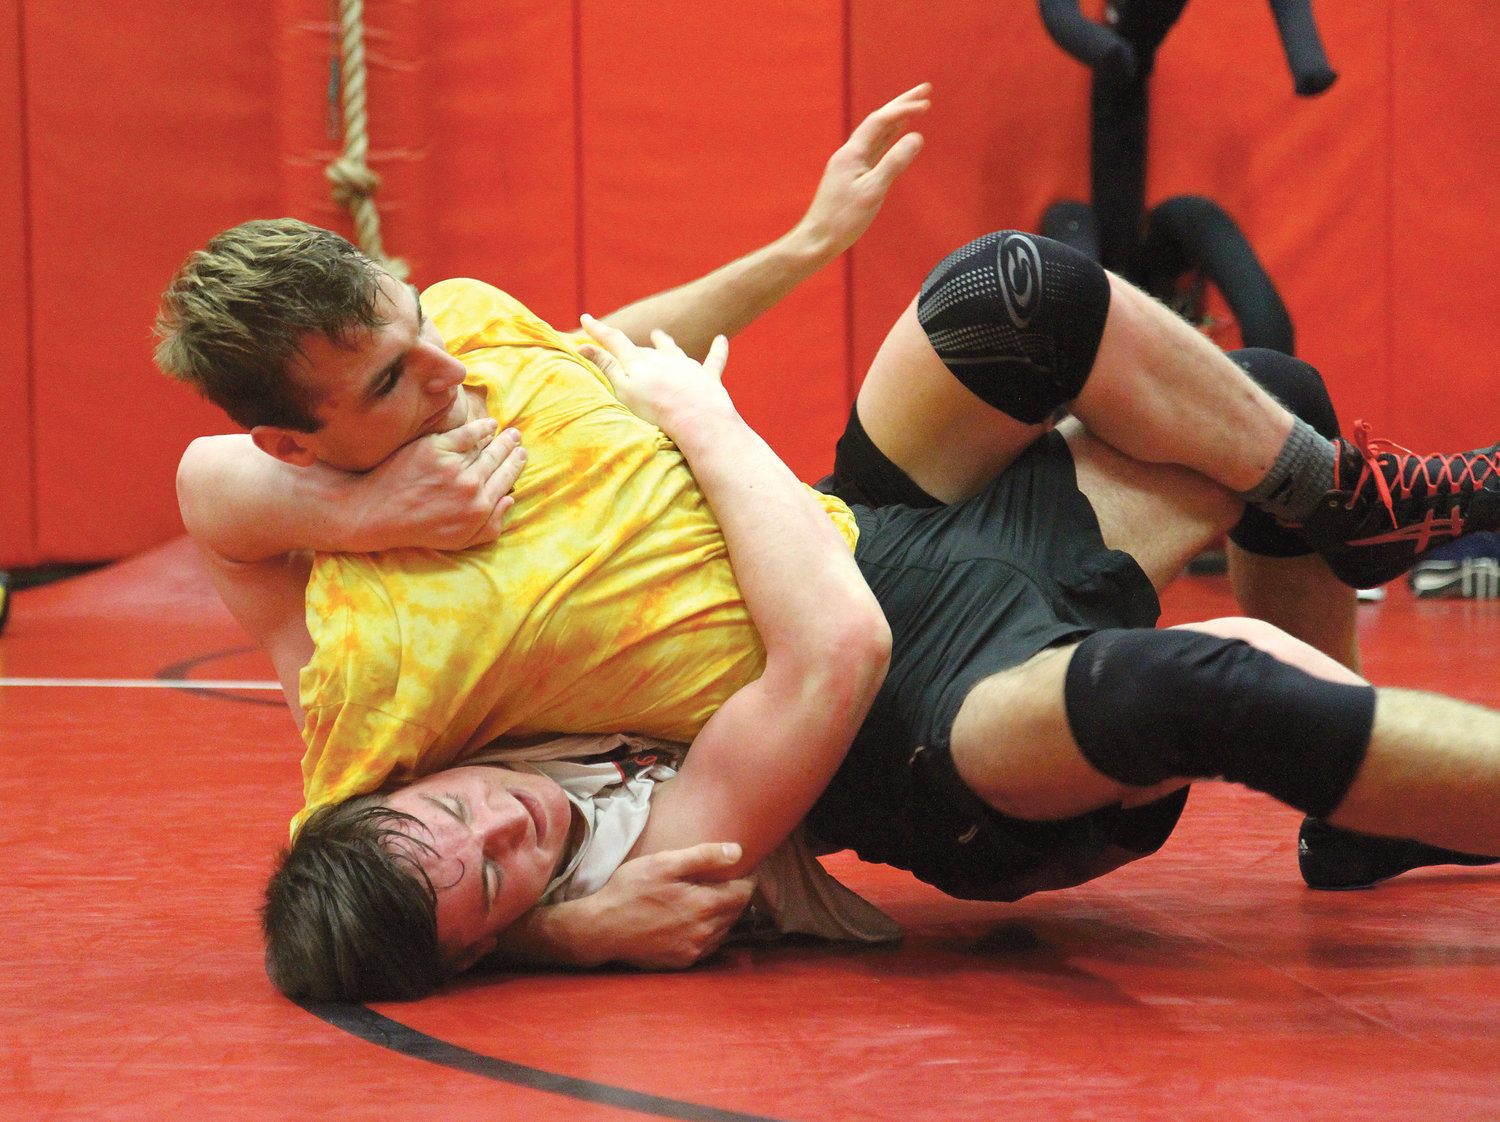 Port Townsend High School wrestlers Gabe Petrick, top, and Dylan Tracer both have their sights set on placing in the top eight in their individual weight classes Feb. 15-16 during Mat Classic XXXI at the Tacoma Dome.